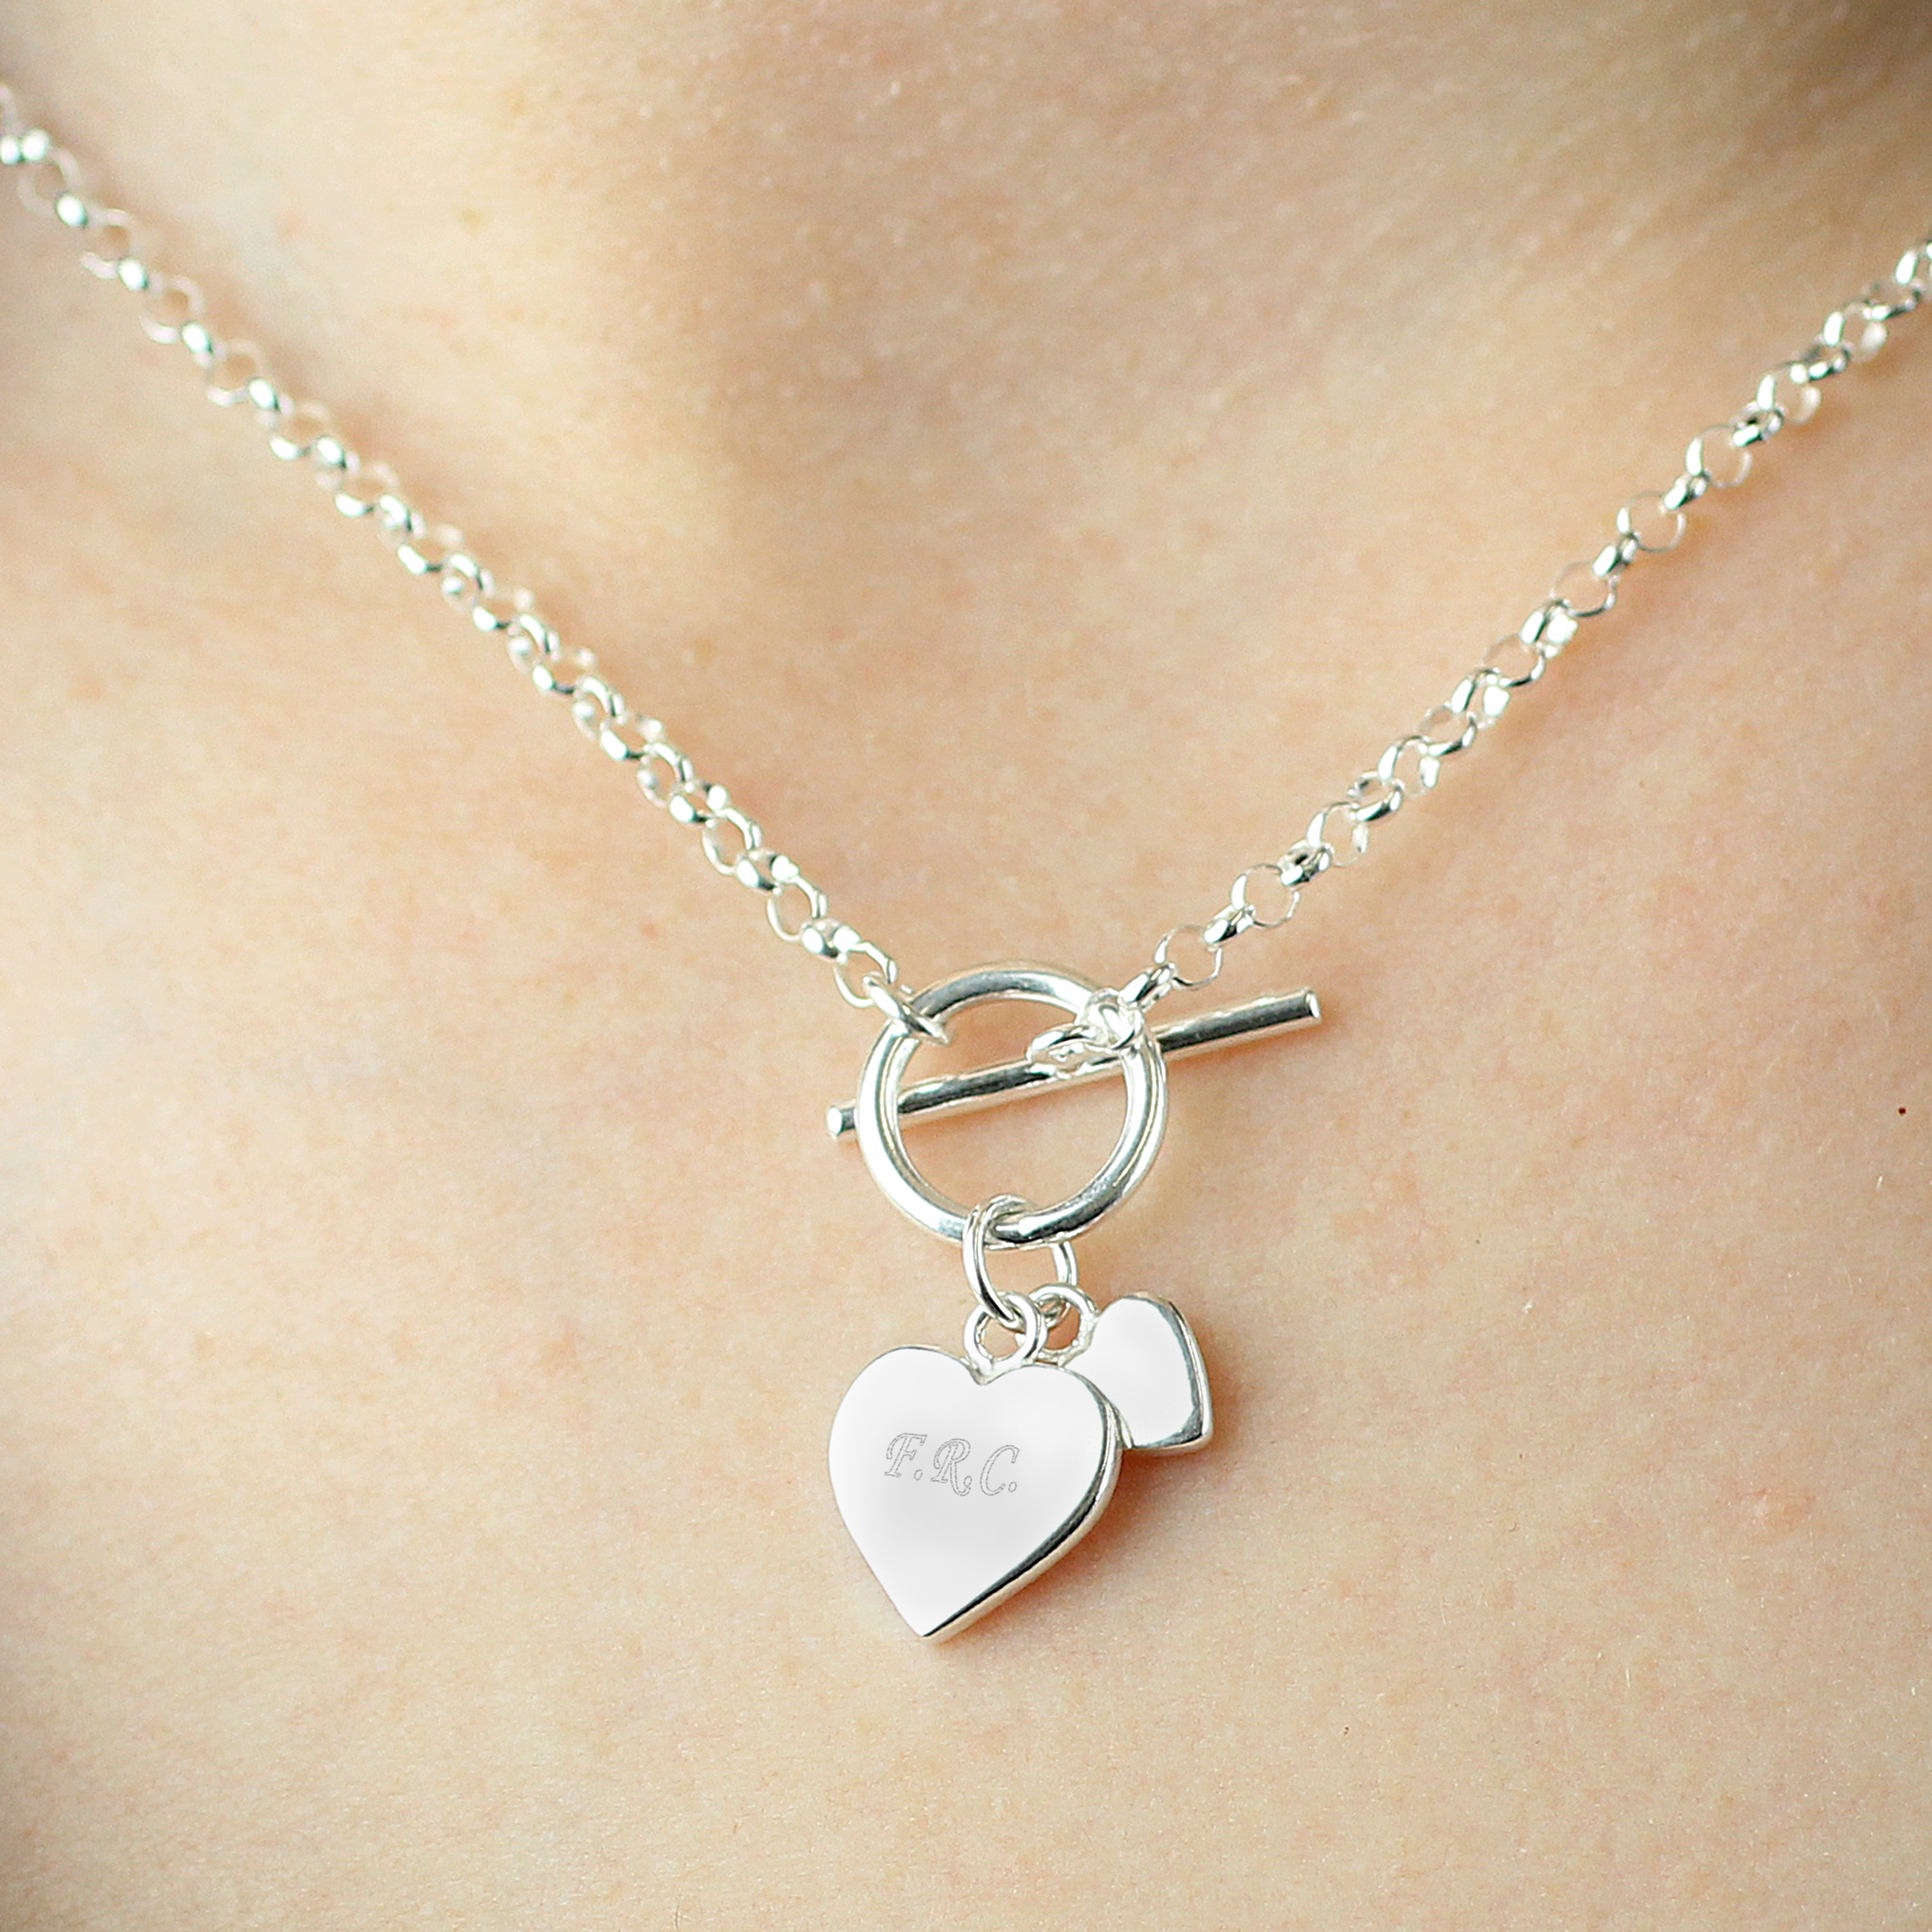 Engraved Hearts T-Bar Necklace